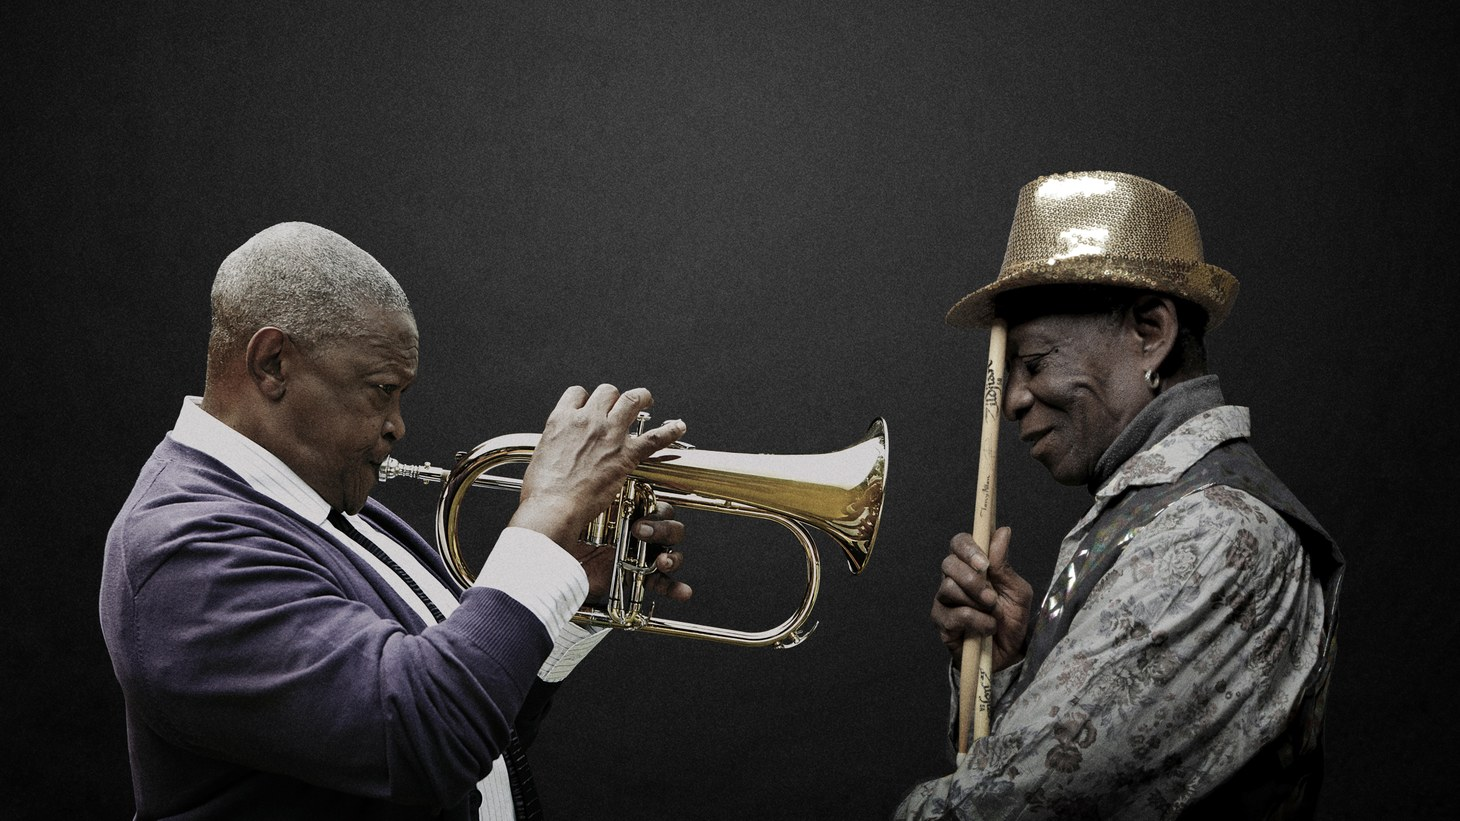 This collaboration between legendary African artists Tony Allen and Hugh Masekela dates back to recordings they made in 2010.